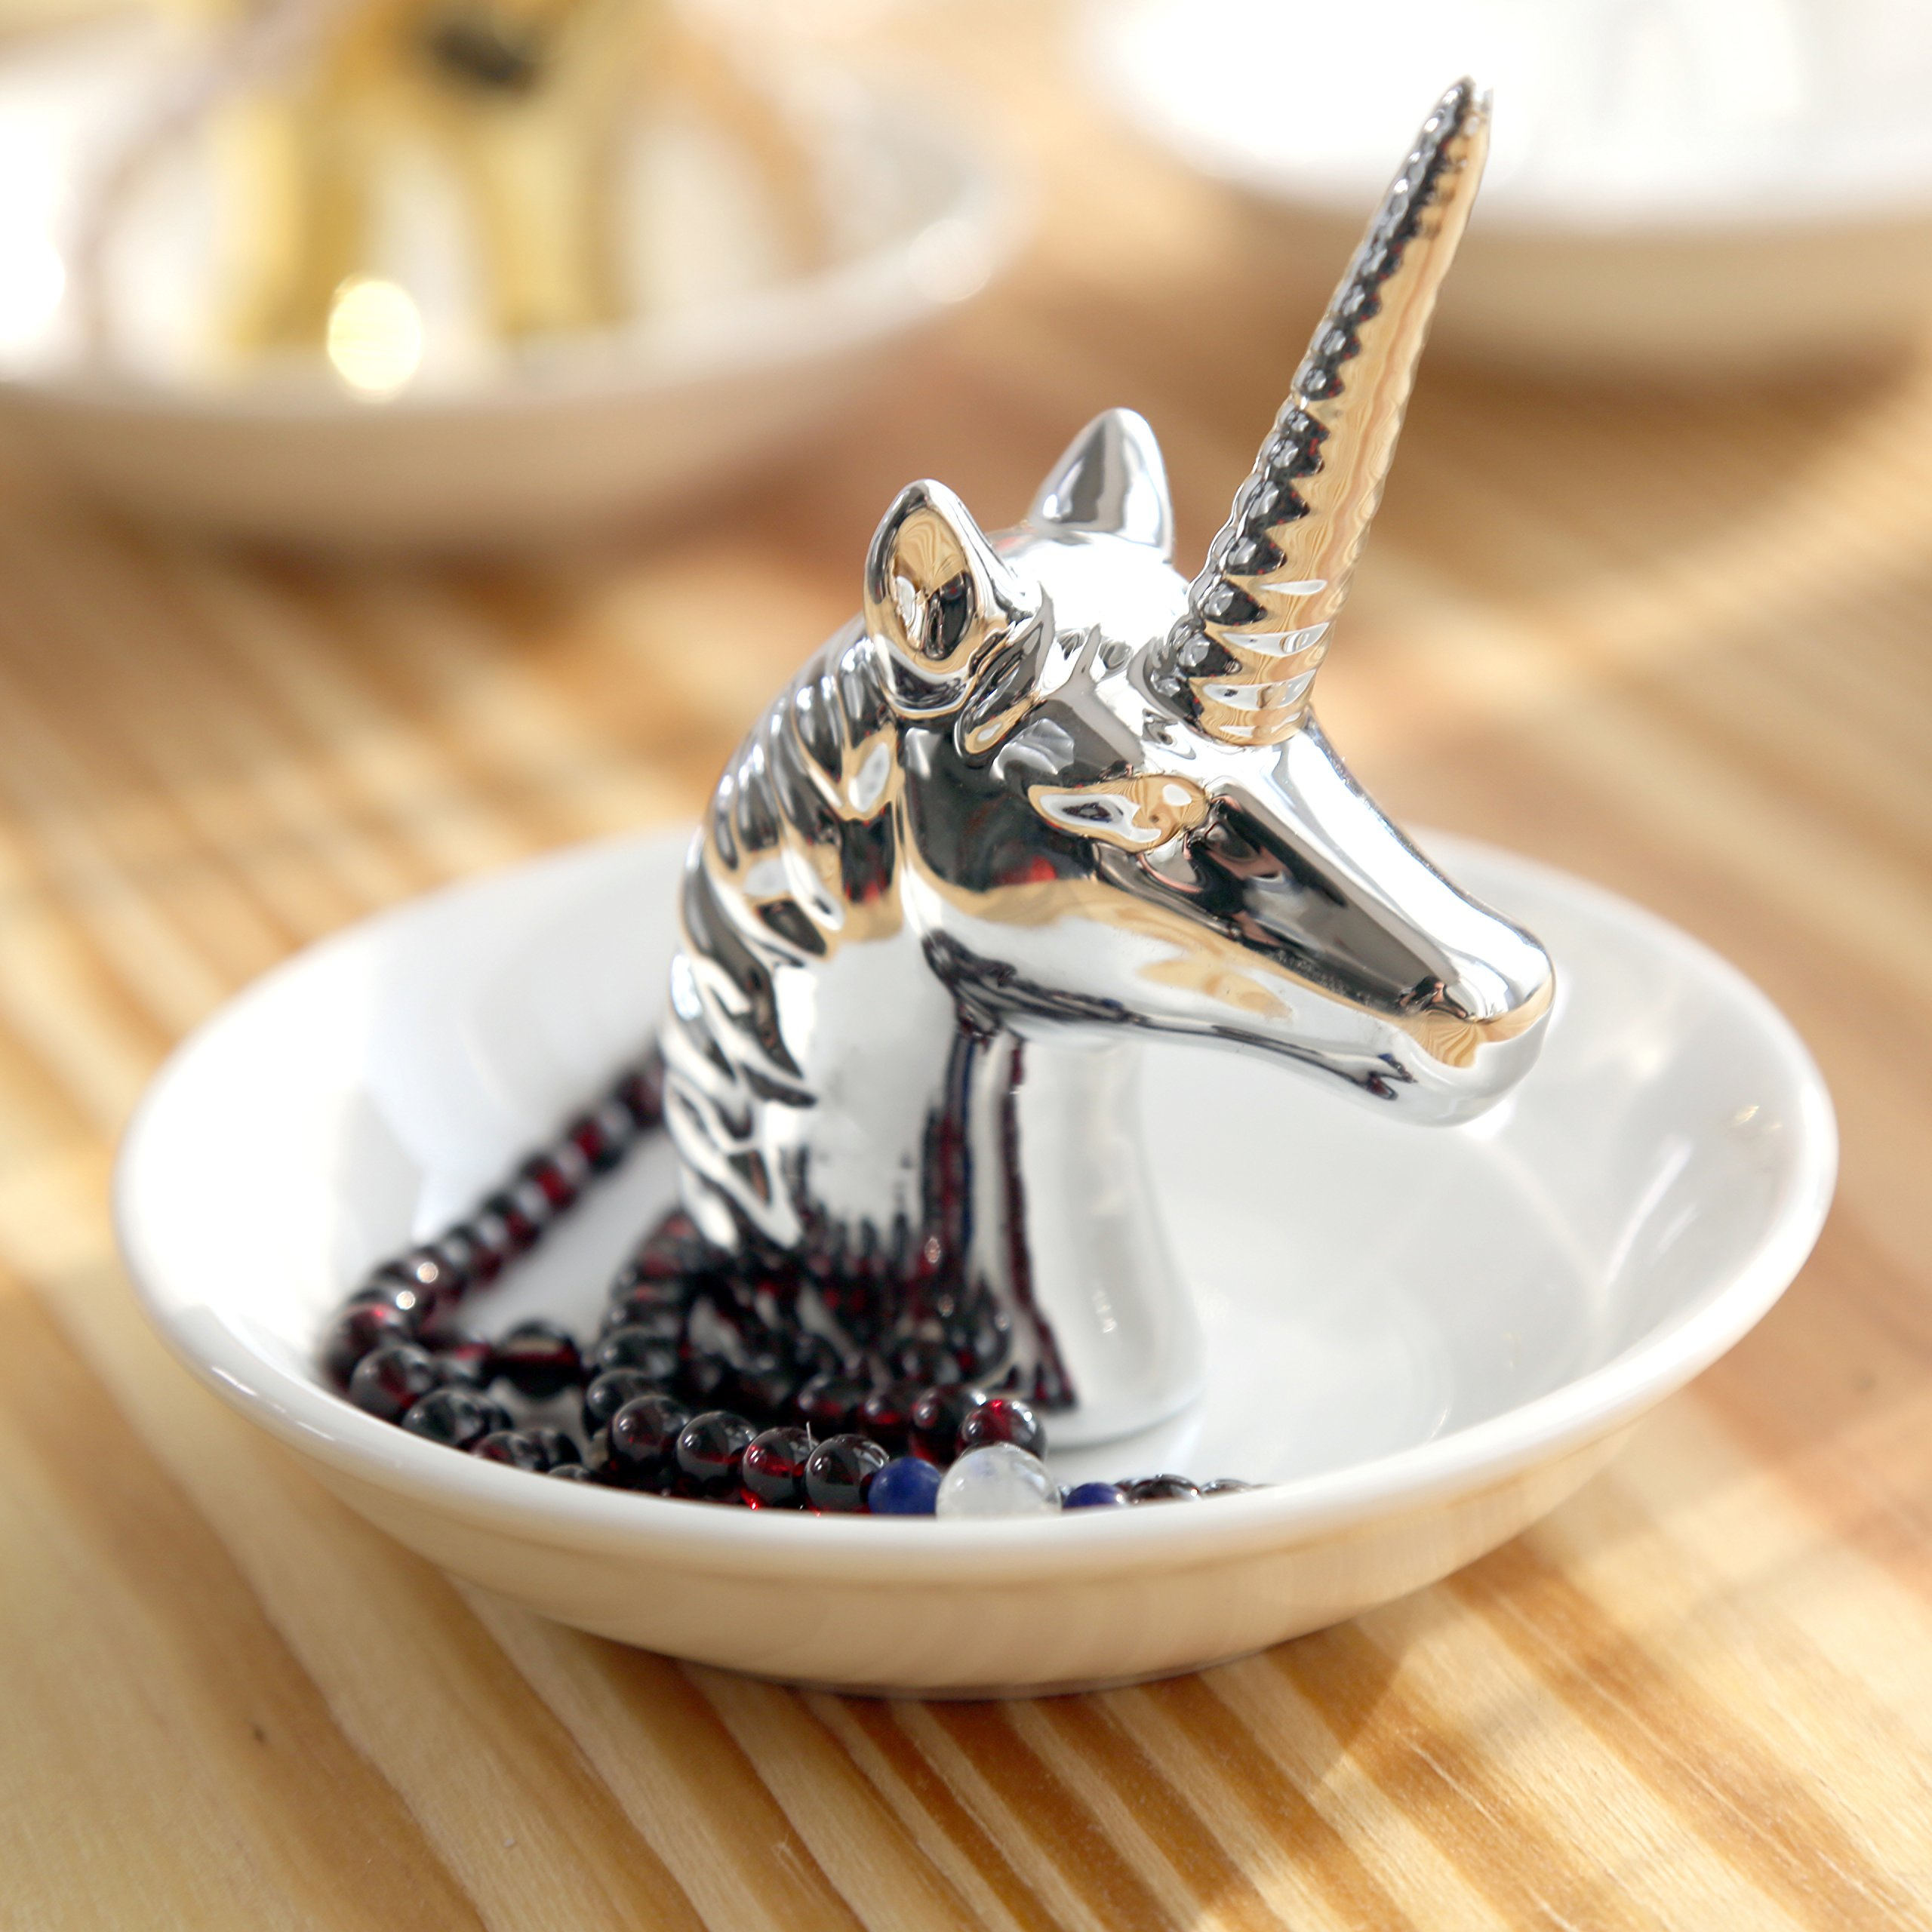 PUDDING CABIN Silver Unicorn Small Jewelry Rack Rings Bracelets Earrings Trays Holder